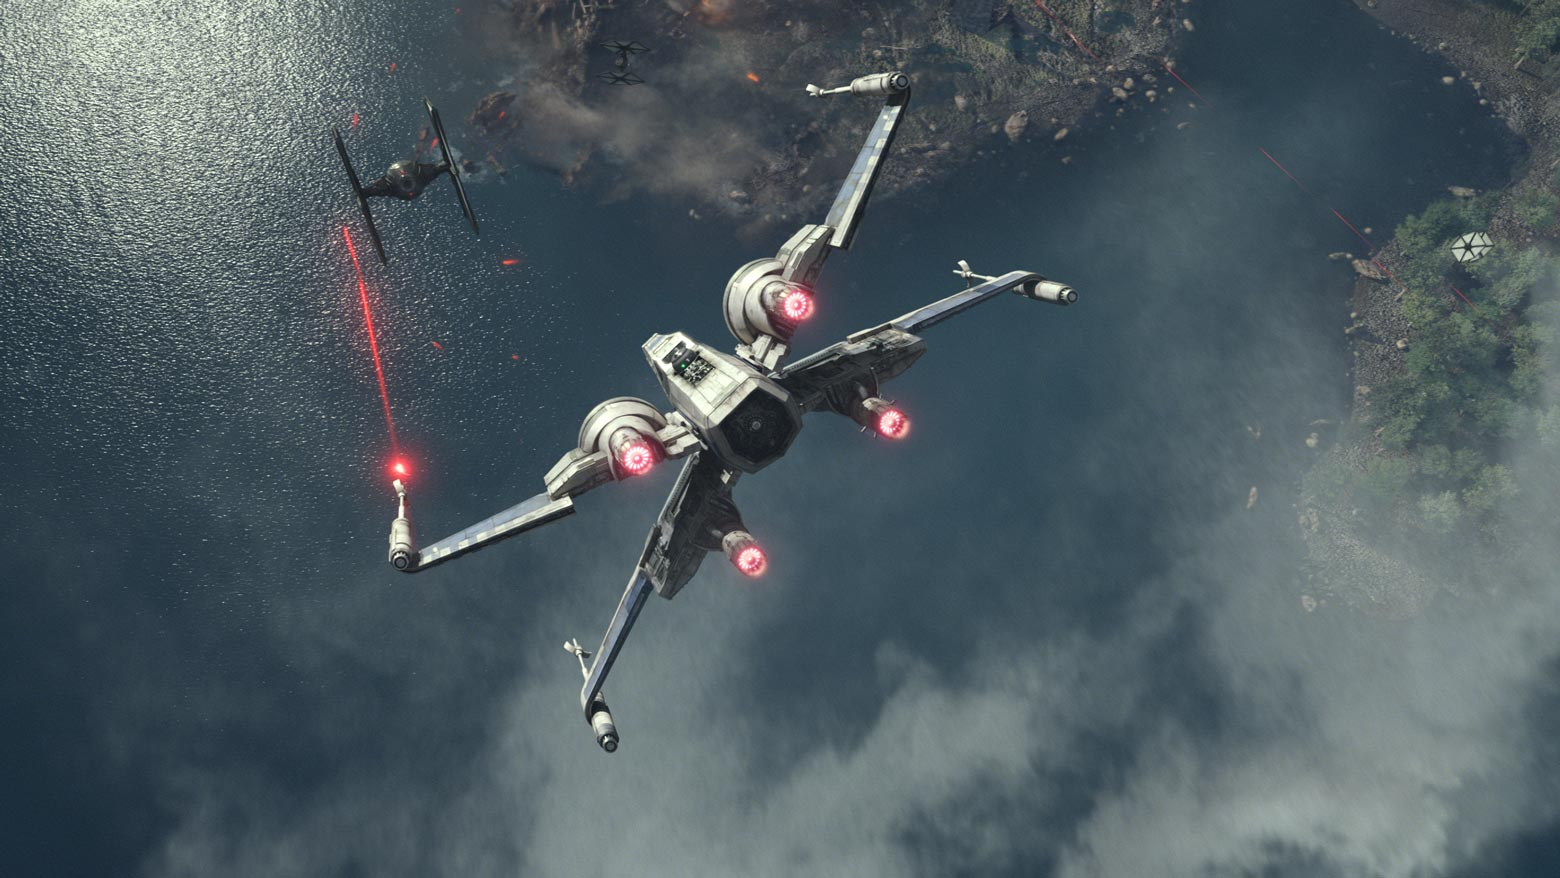 The Resistance X-wing fighter as seen in Star Wars: The Force Awakens.